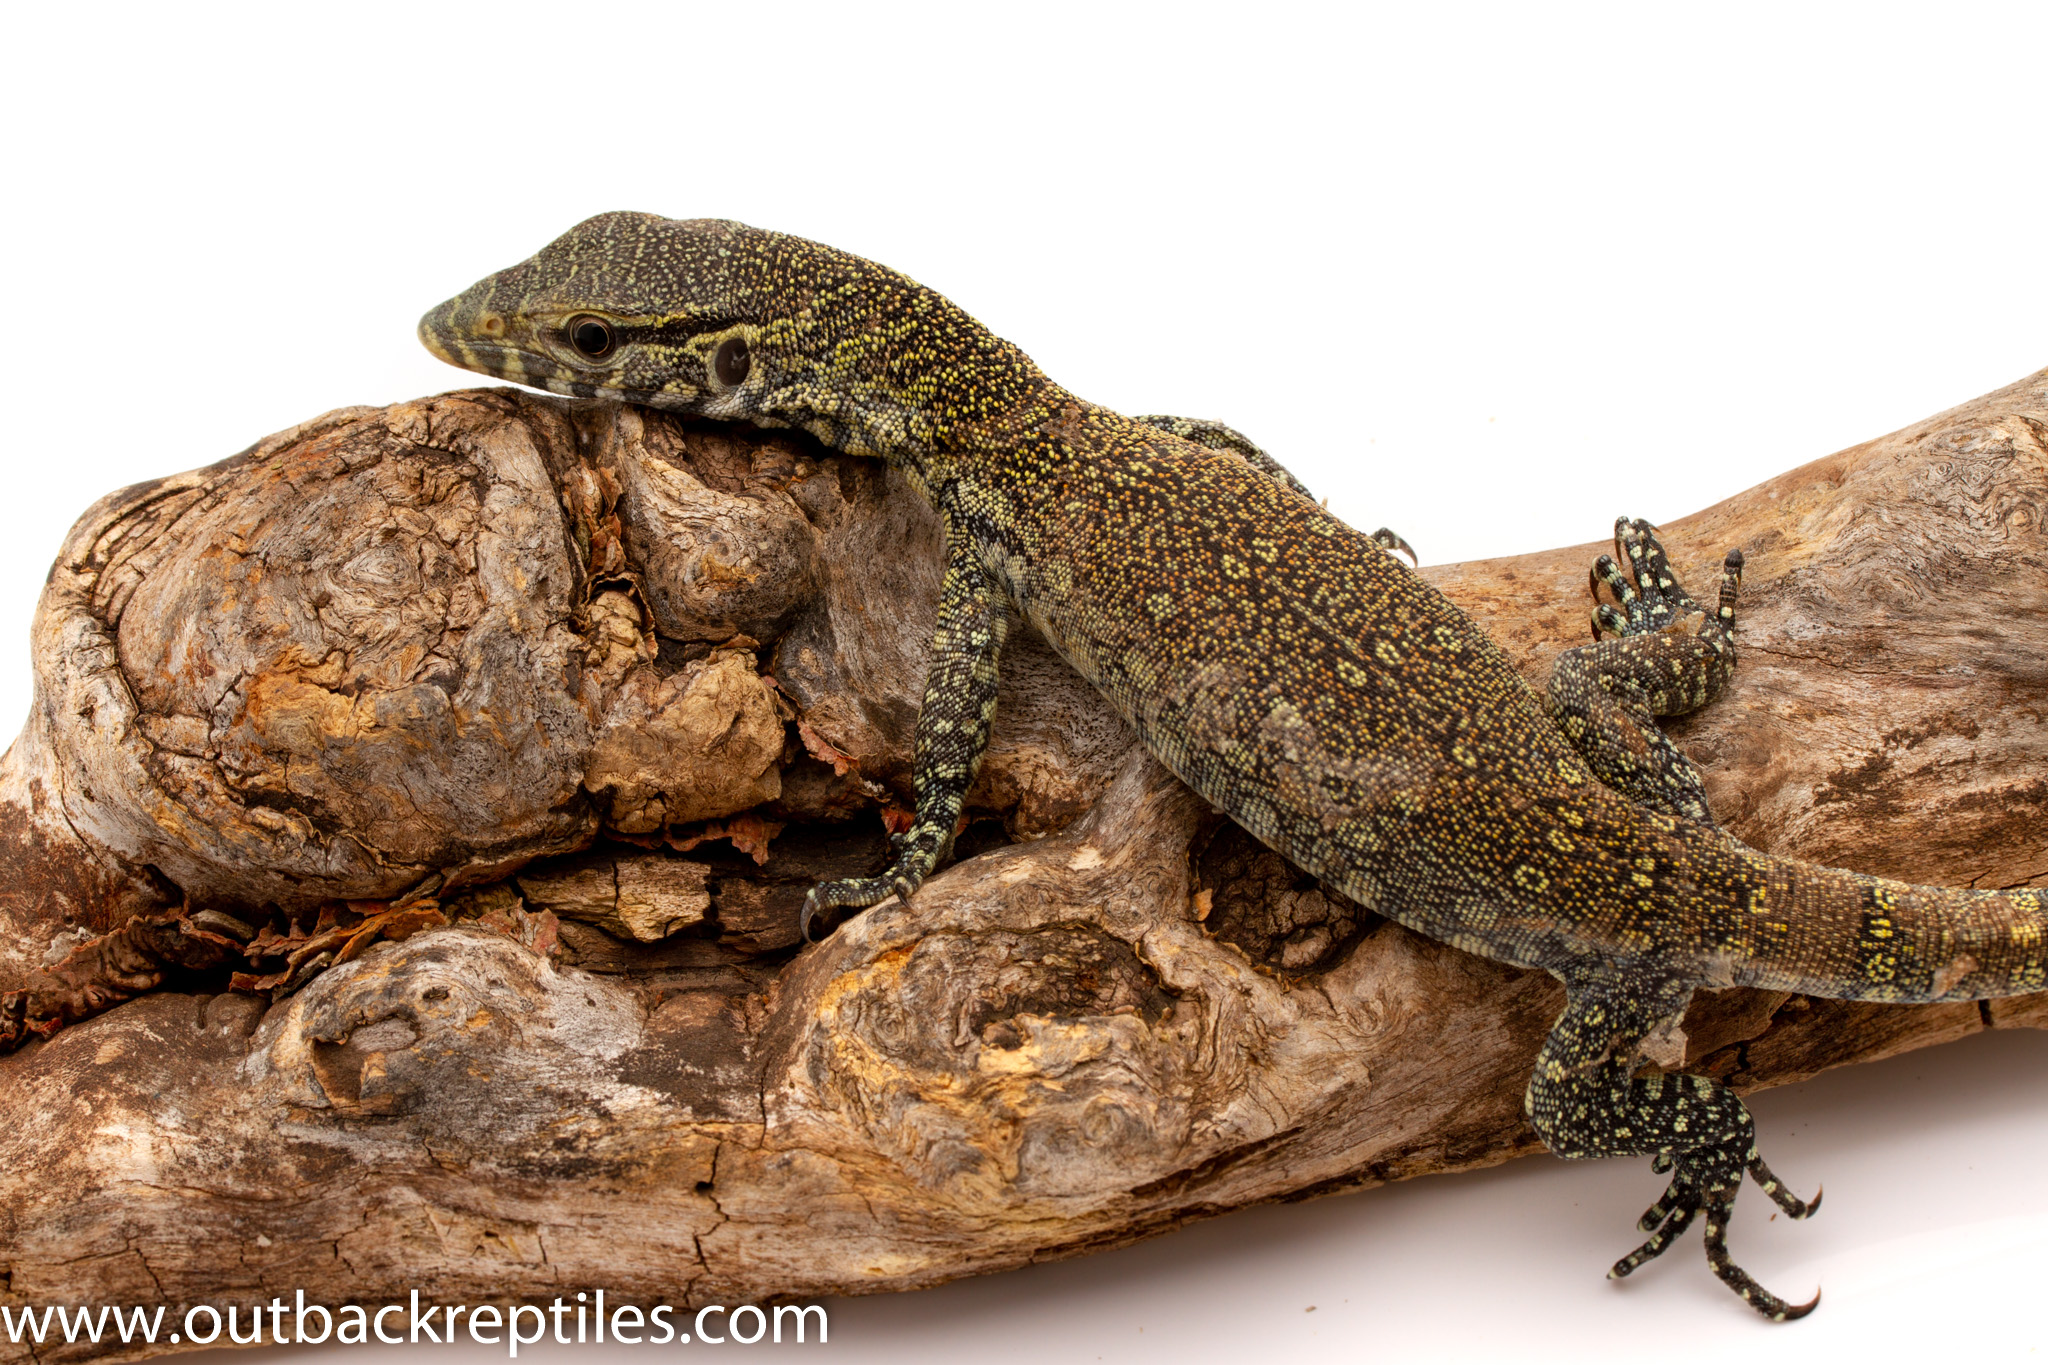 Blue Nile monitor for sale